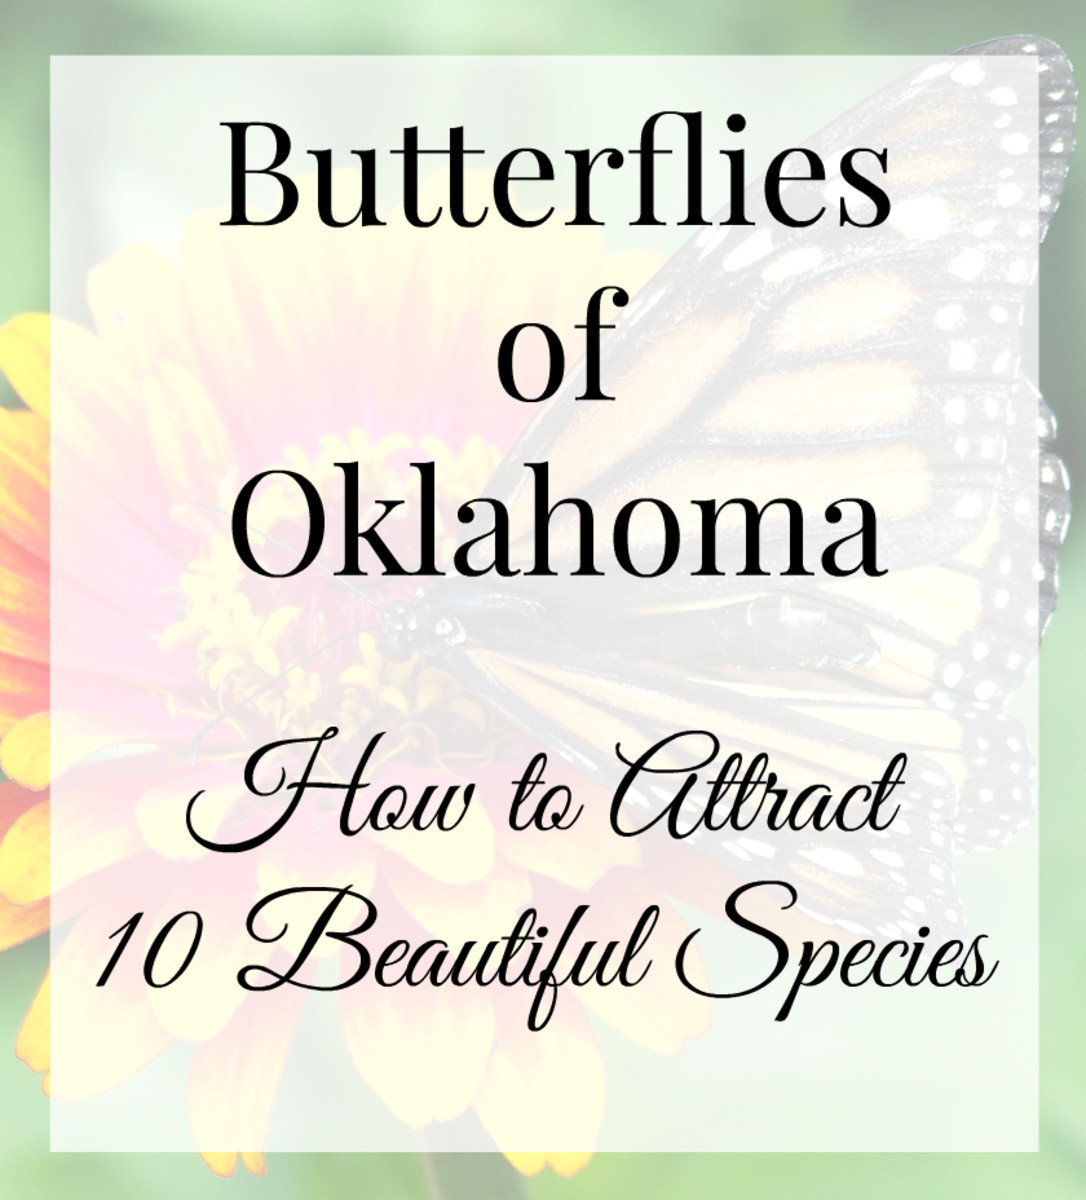 Short introduction to 10 beautiful Oklahoma butterfly species.